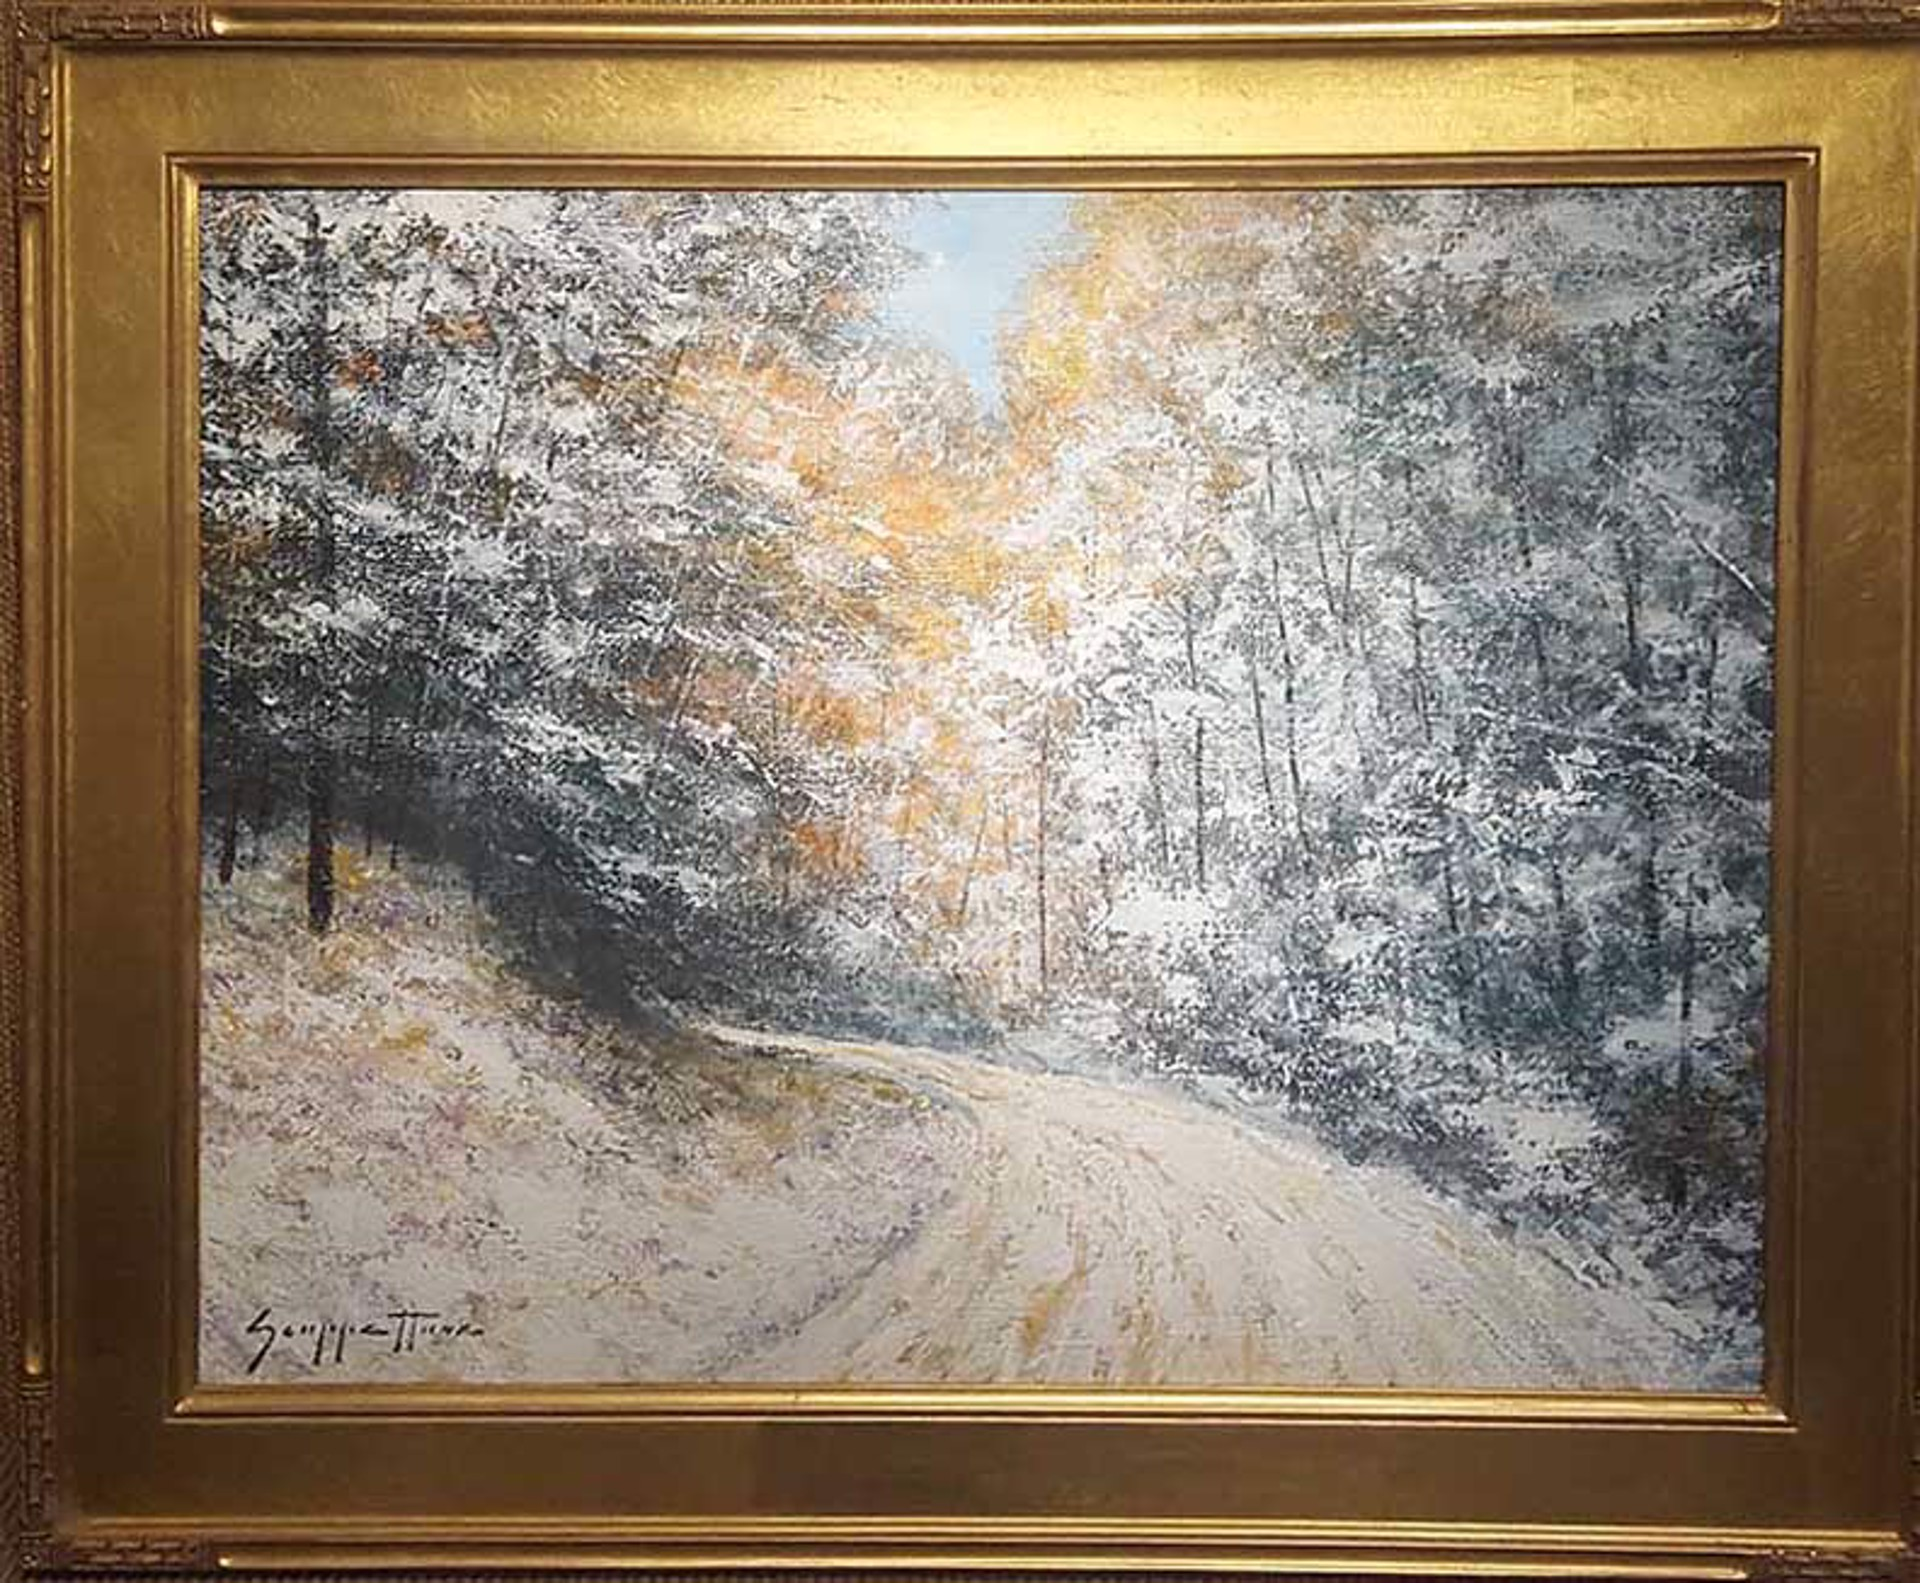 Late Autumn, Early Snow by James Scoppettone